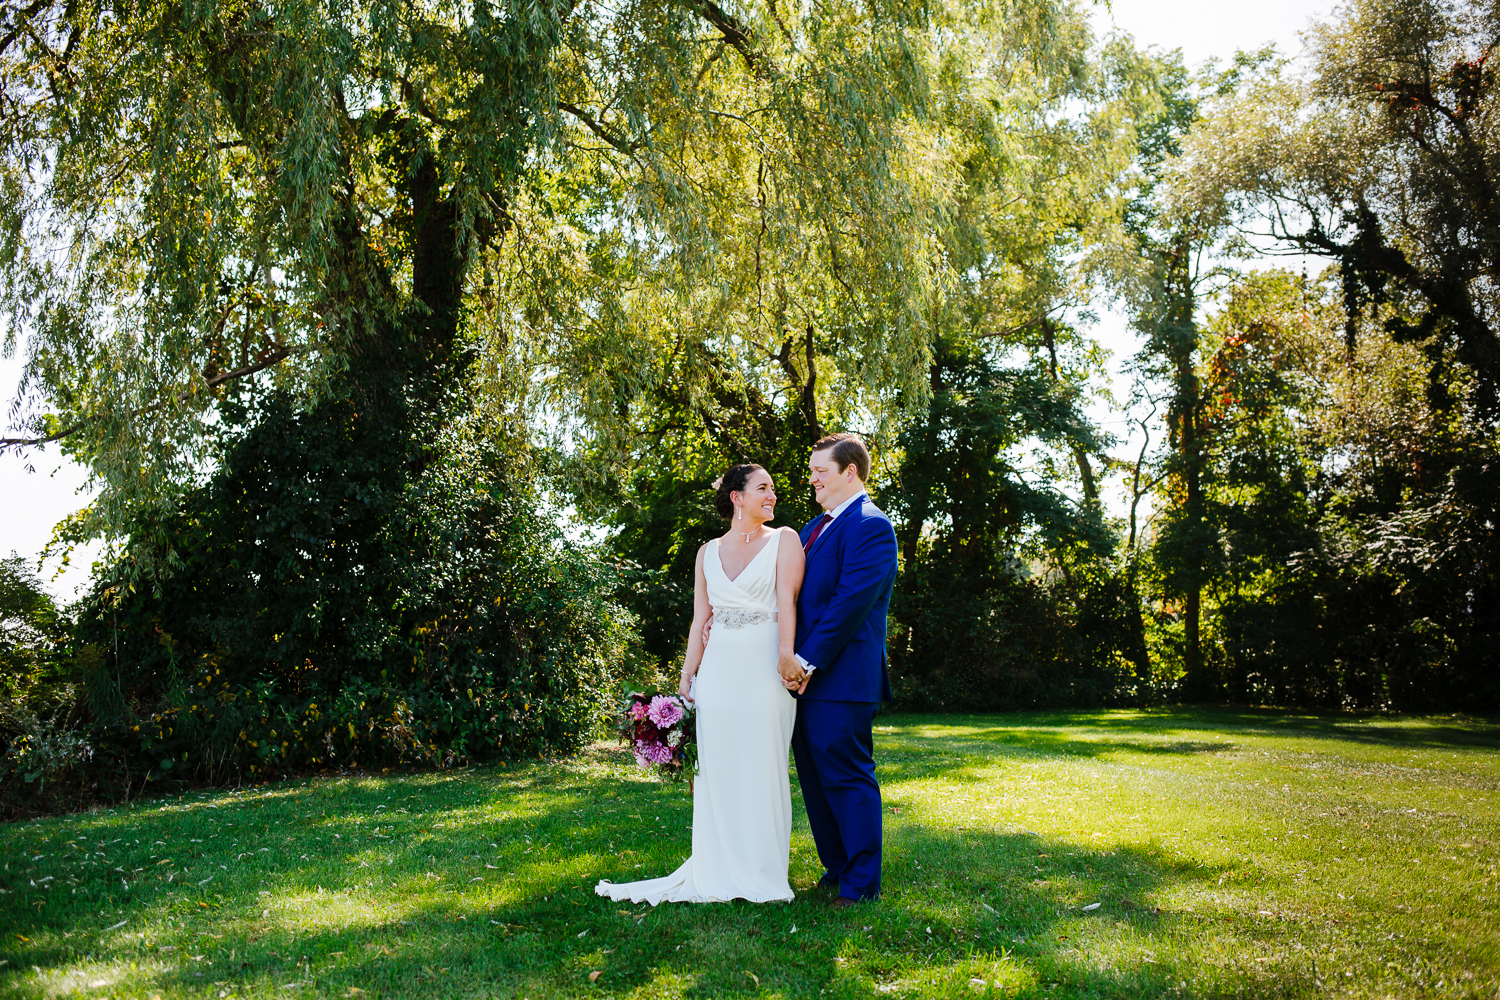 Bride and groom look at each other in front of a willow tree.